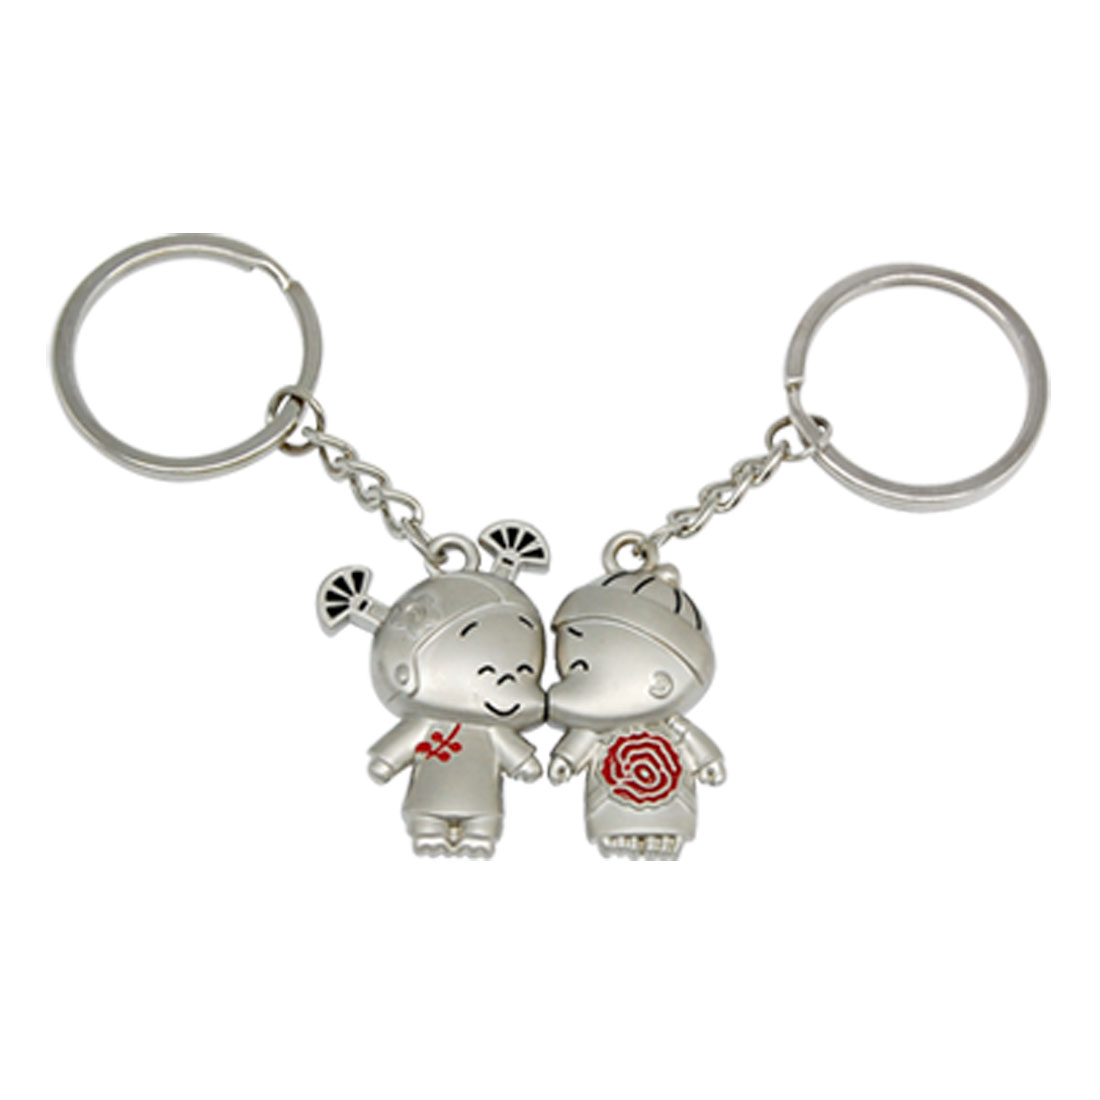 Kissing Couple Keychain Magnetic Key Chain Ring Set